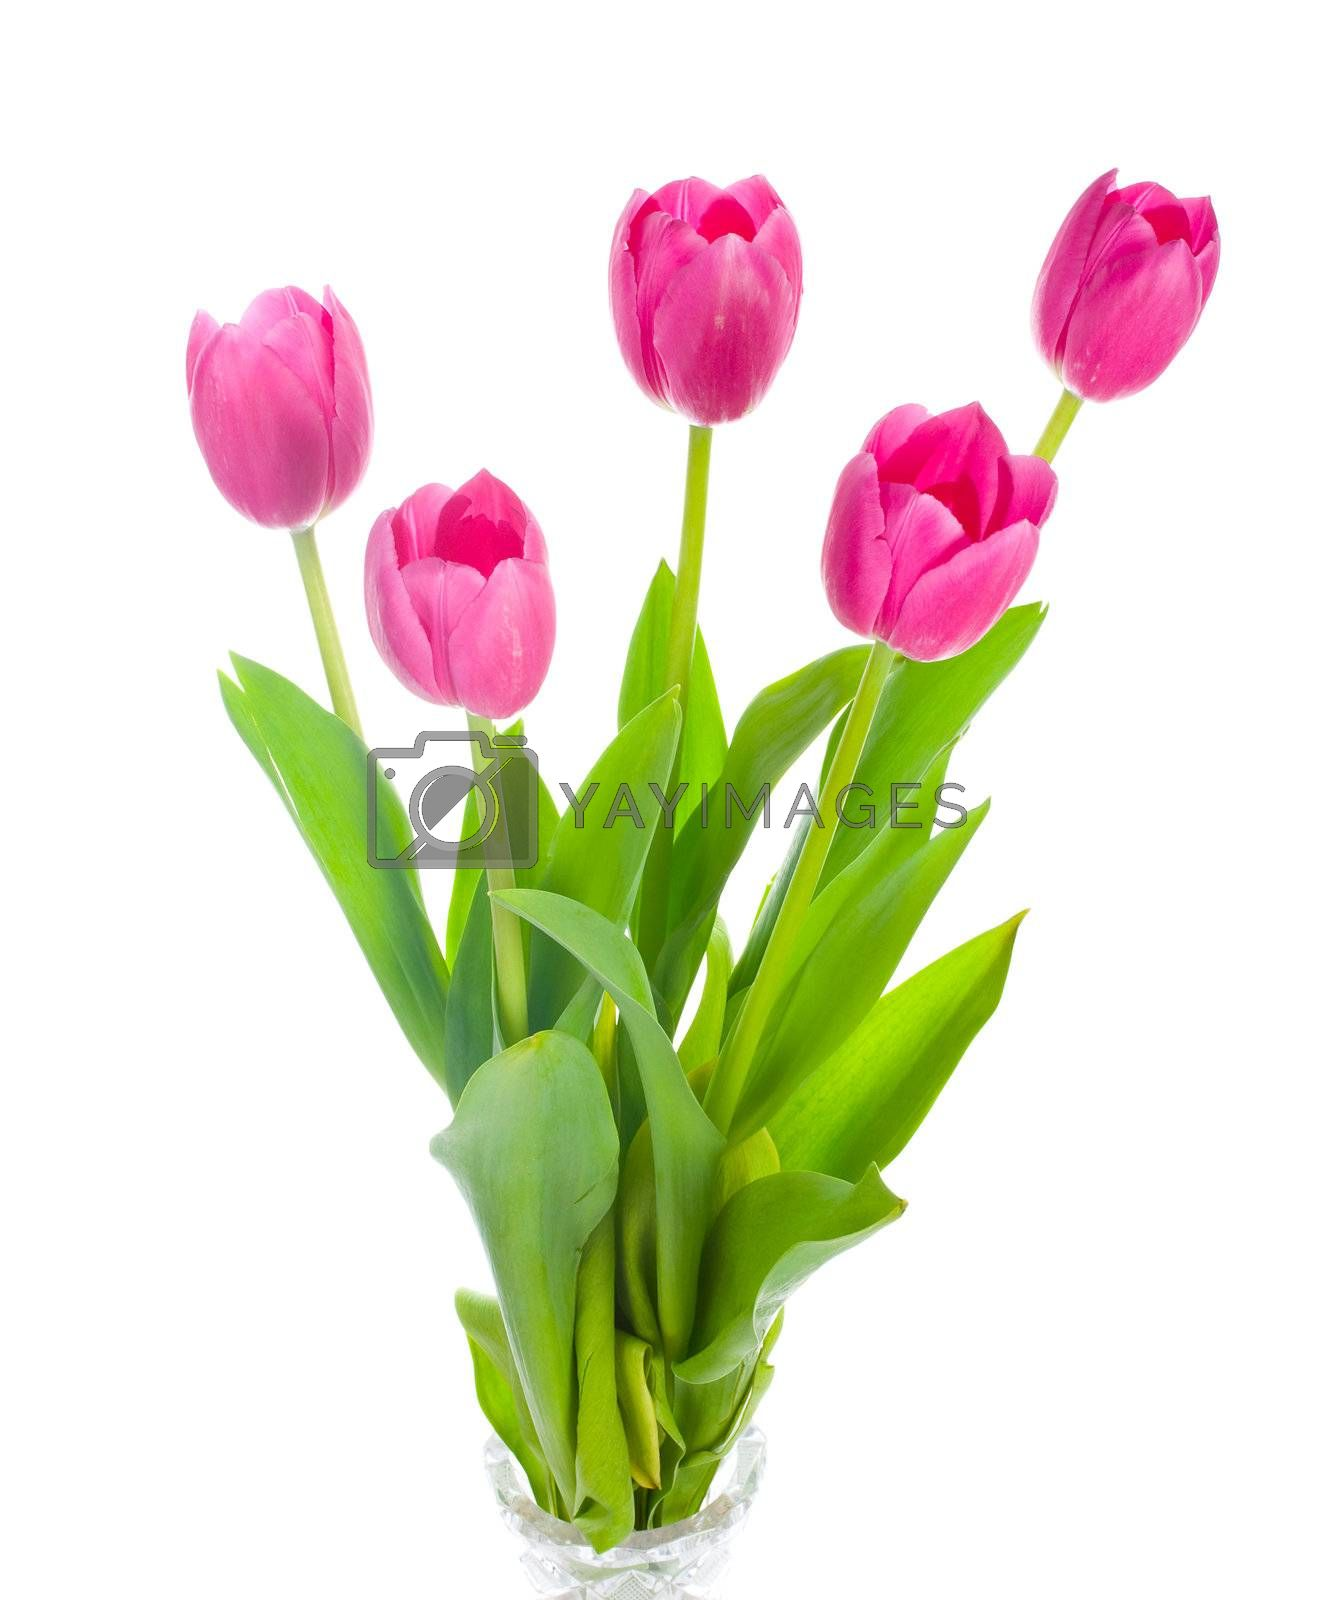 five pink tulips bouquet, isolated on white